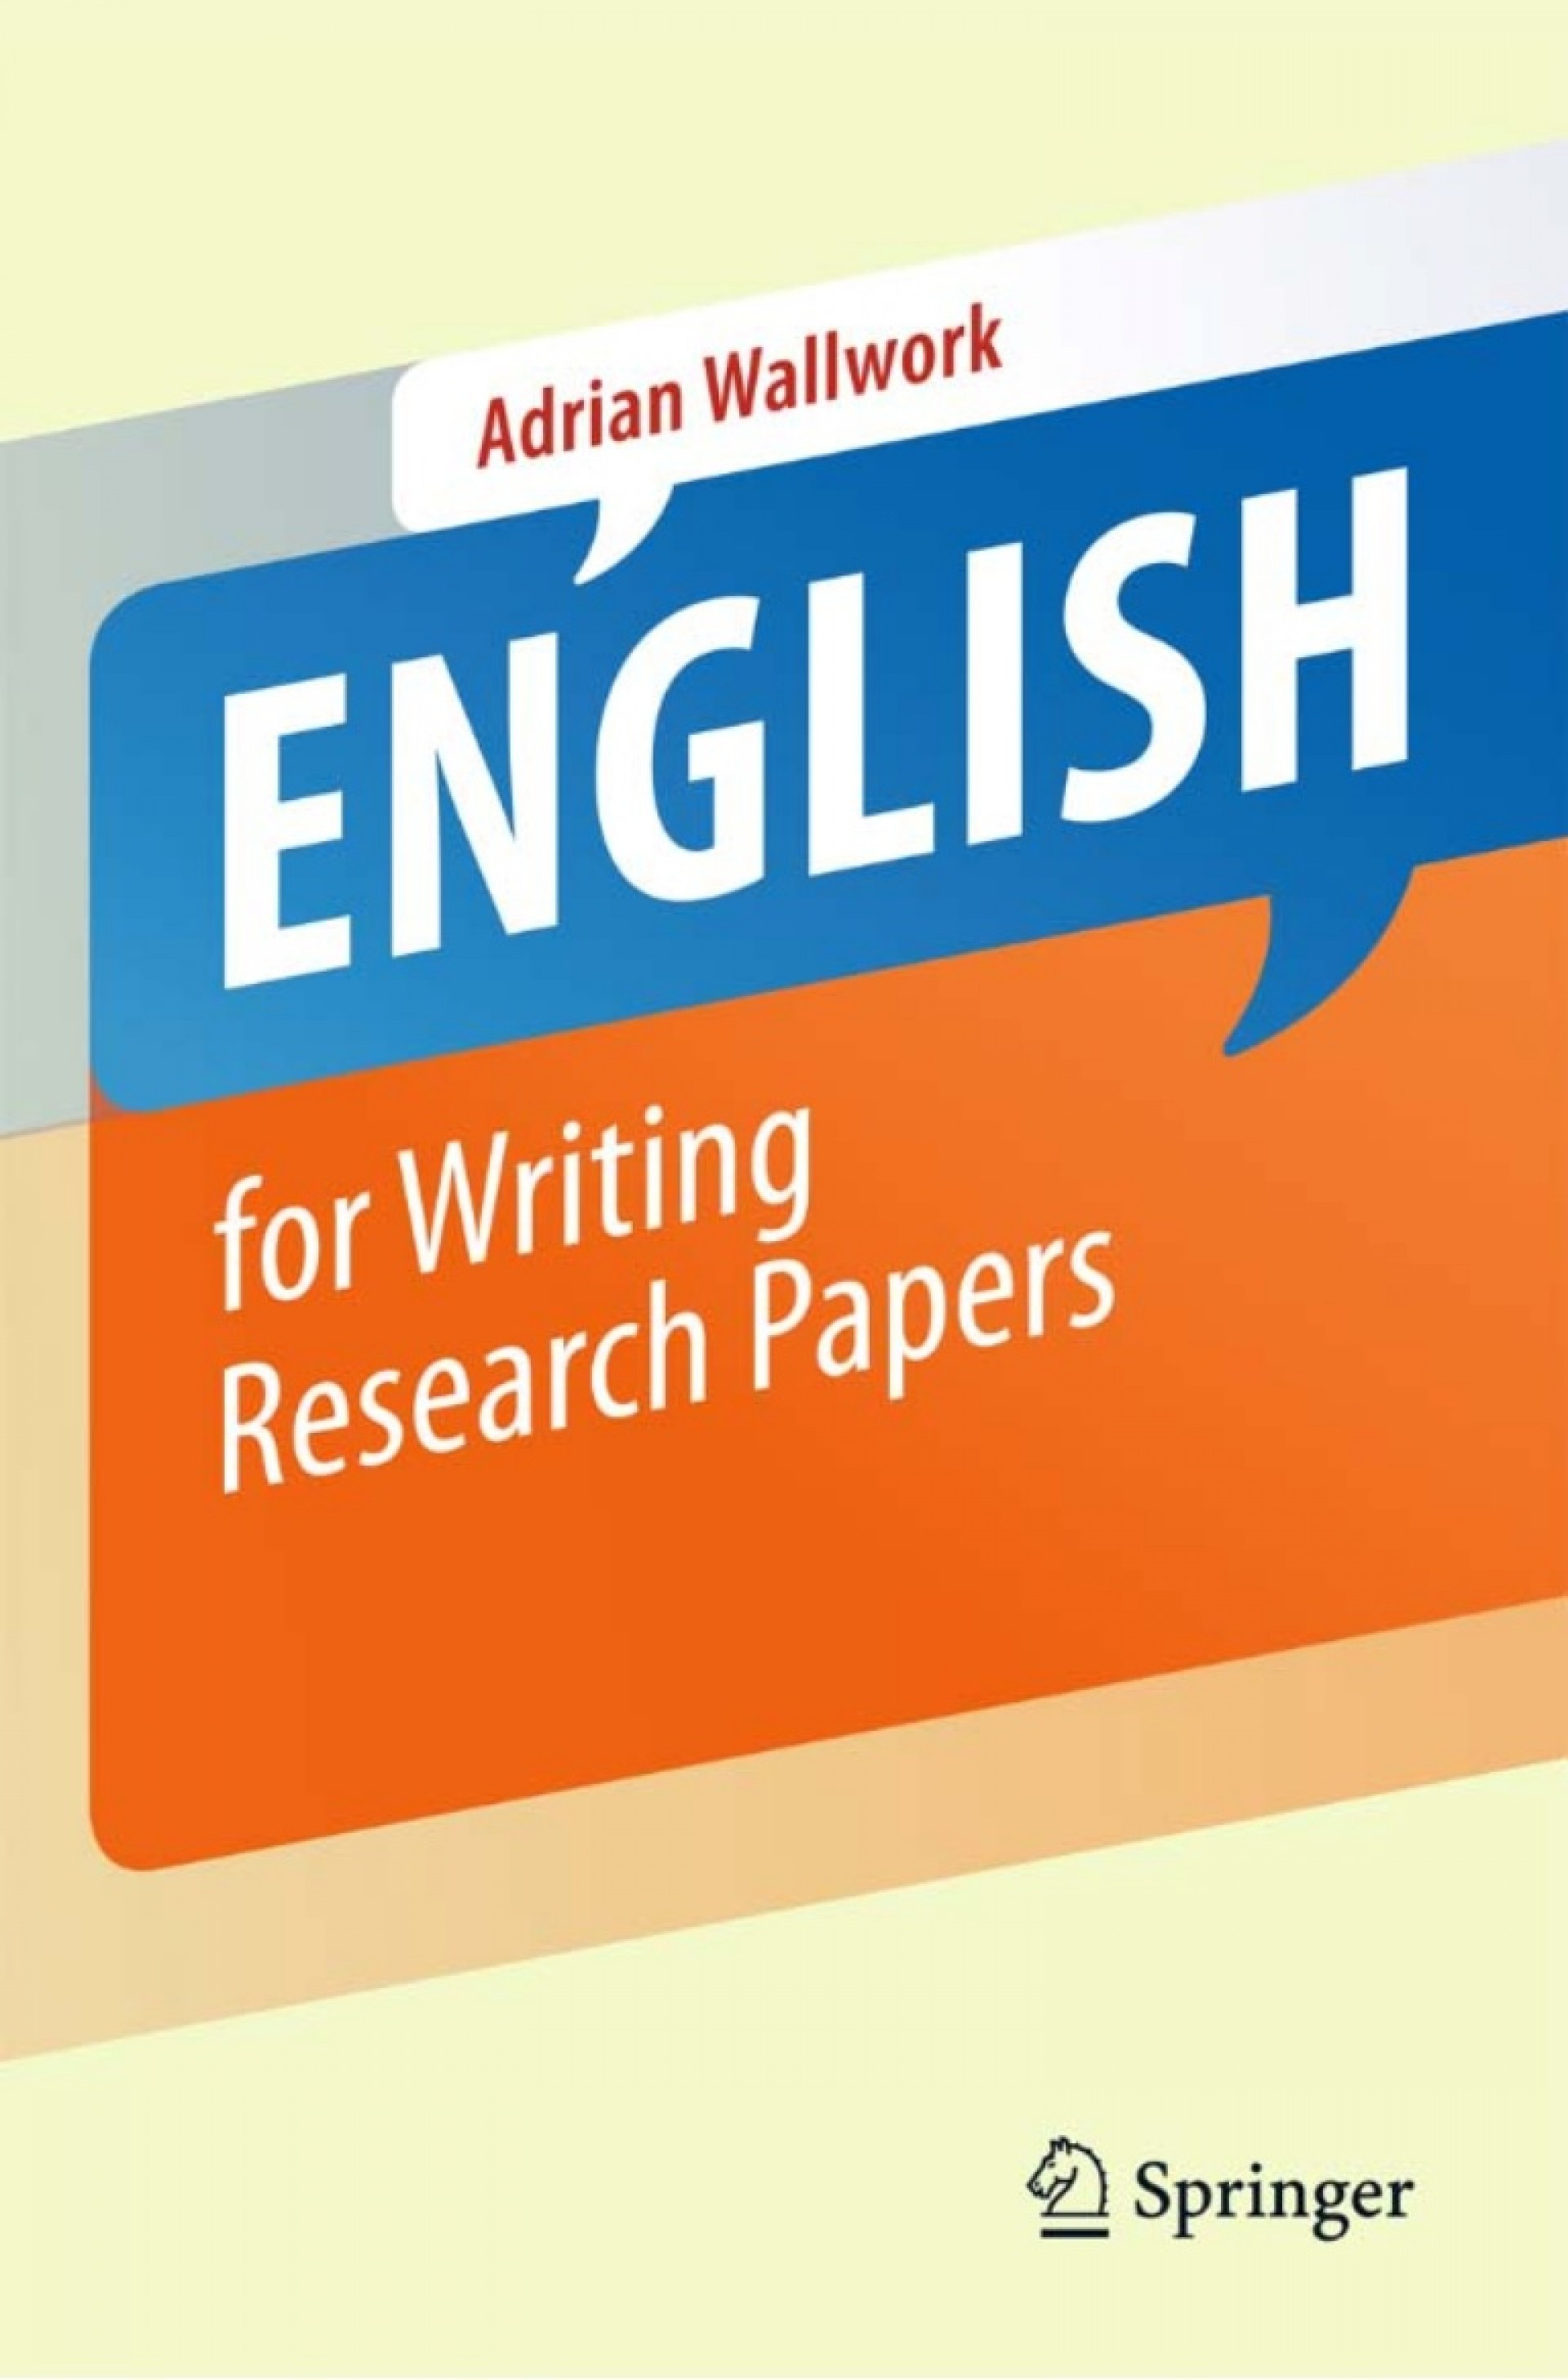 019 Englishforwritingresearchpapers Conversion Gate01 Thumbnail Writing Research Striking Paper Meme Papers A Complete Guide 15th Edition Pdf Free 16th 1920